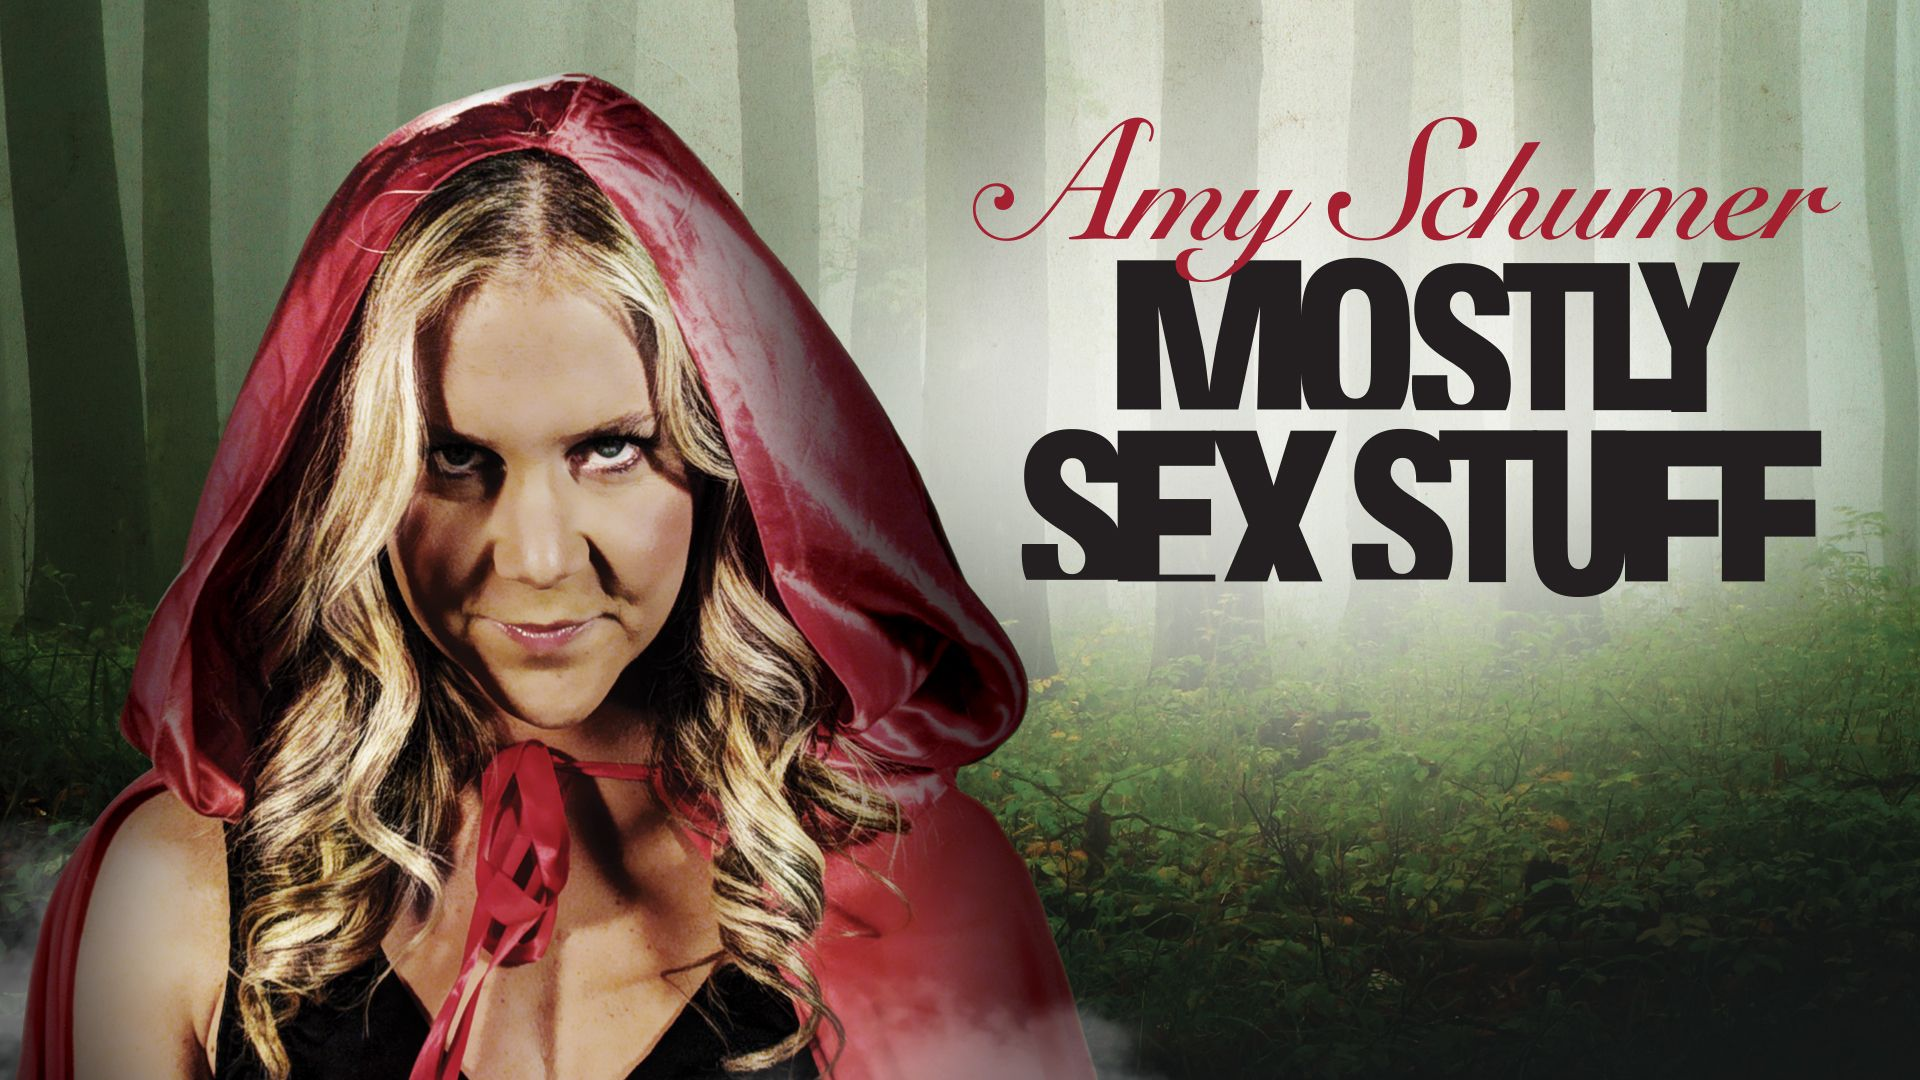 amy schumer mostly sex stuff full video Watch amy schumer mostly sex stuff free | ВКонтакте.